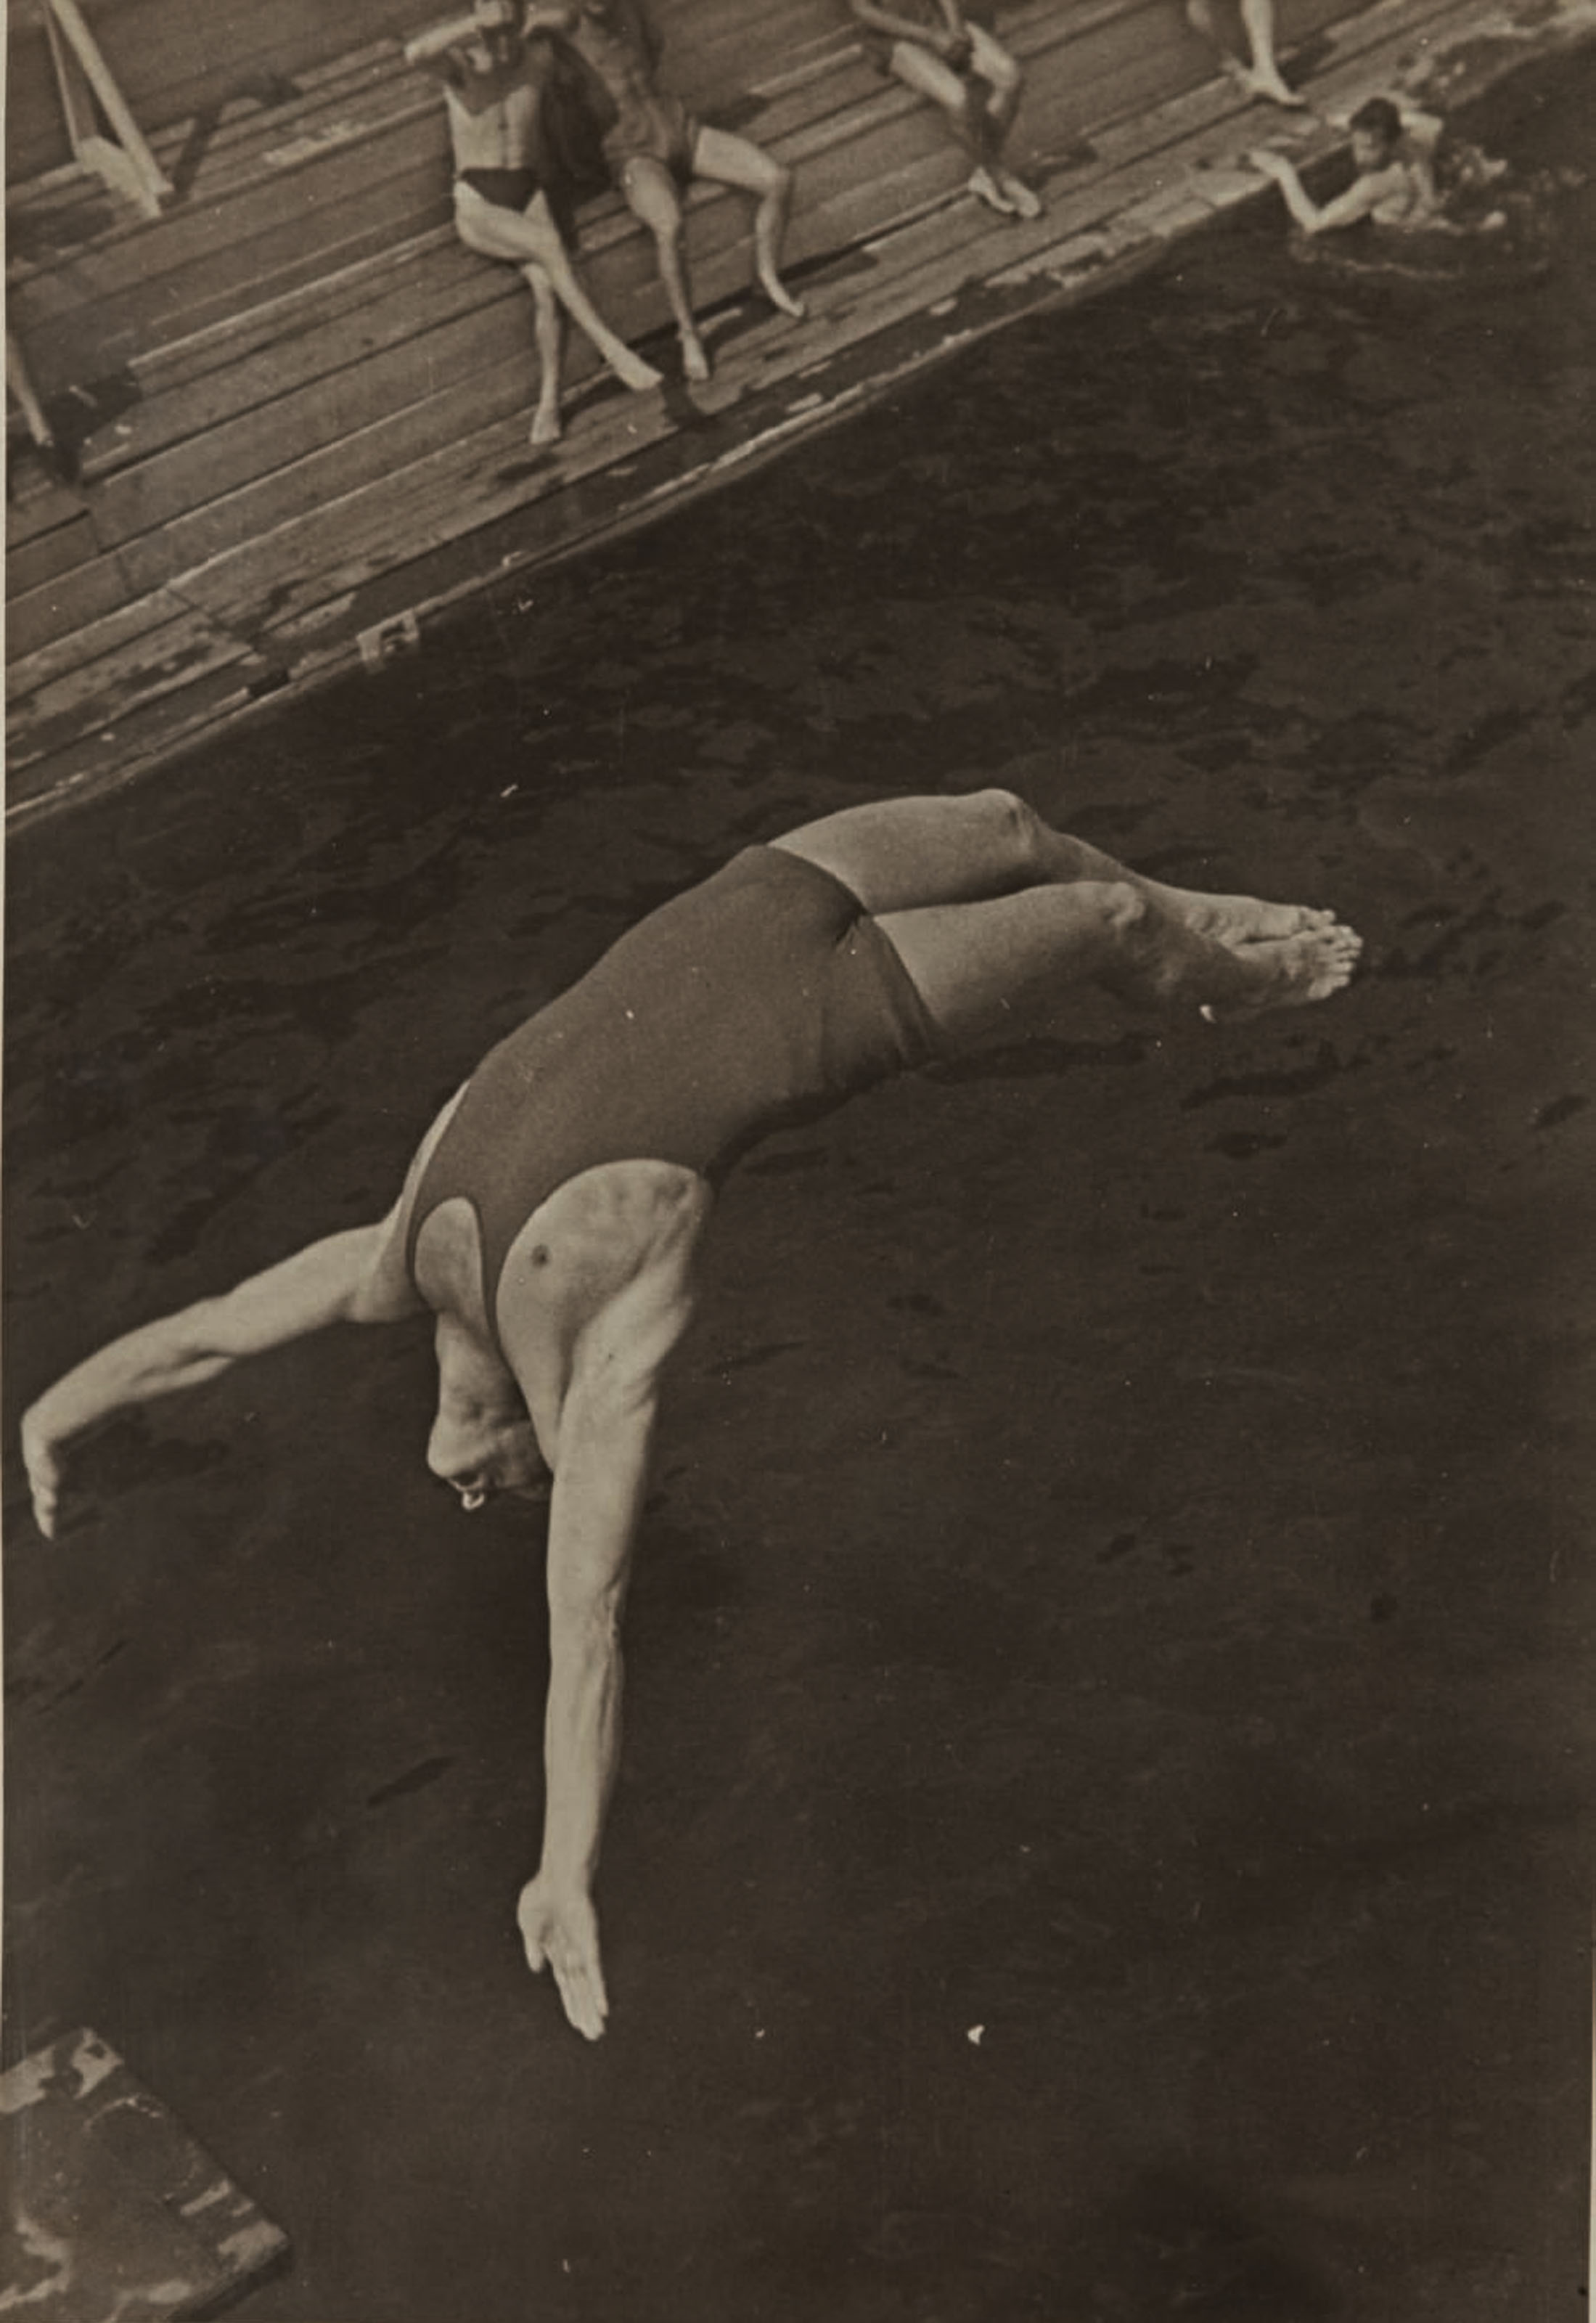 The Dive, Plongeon, 1935